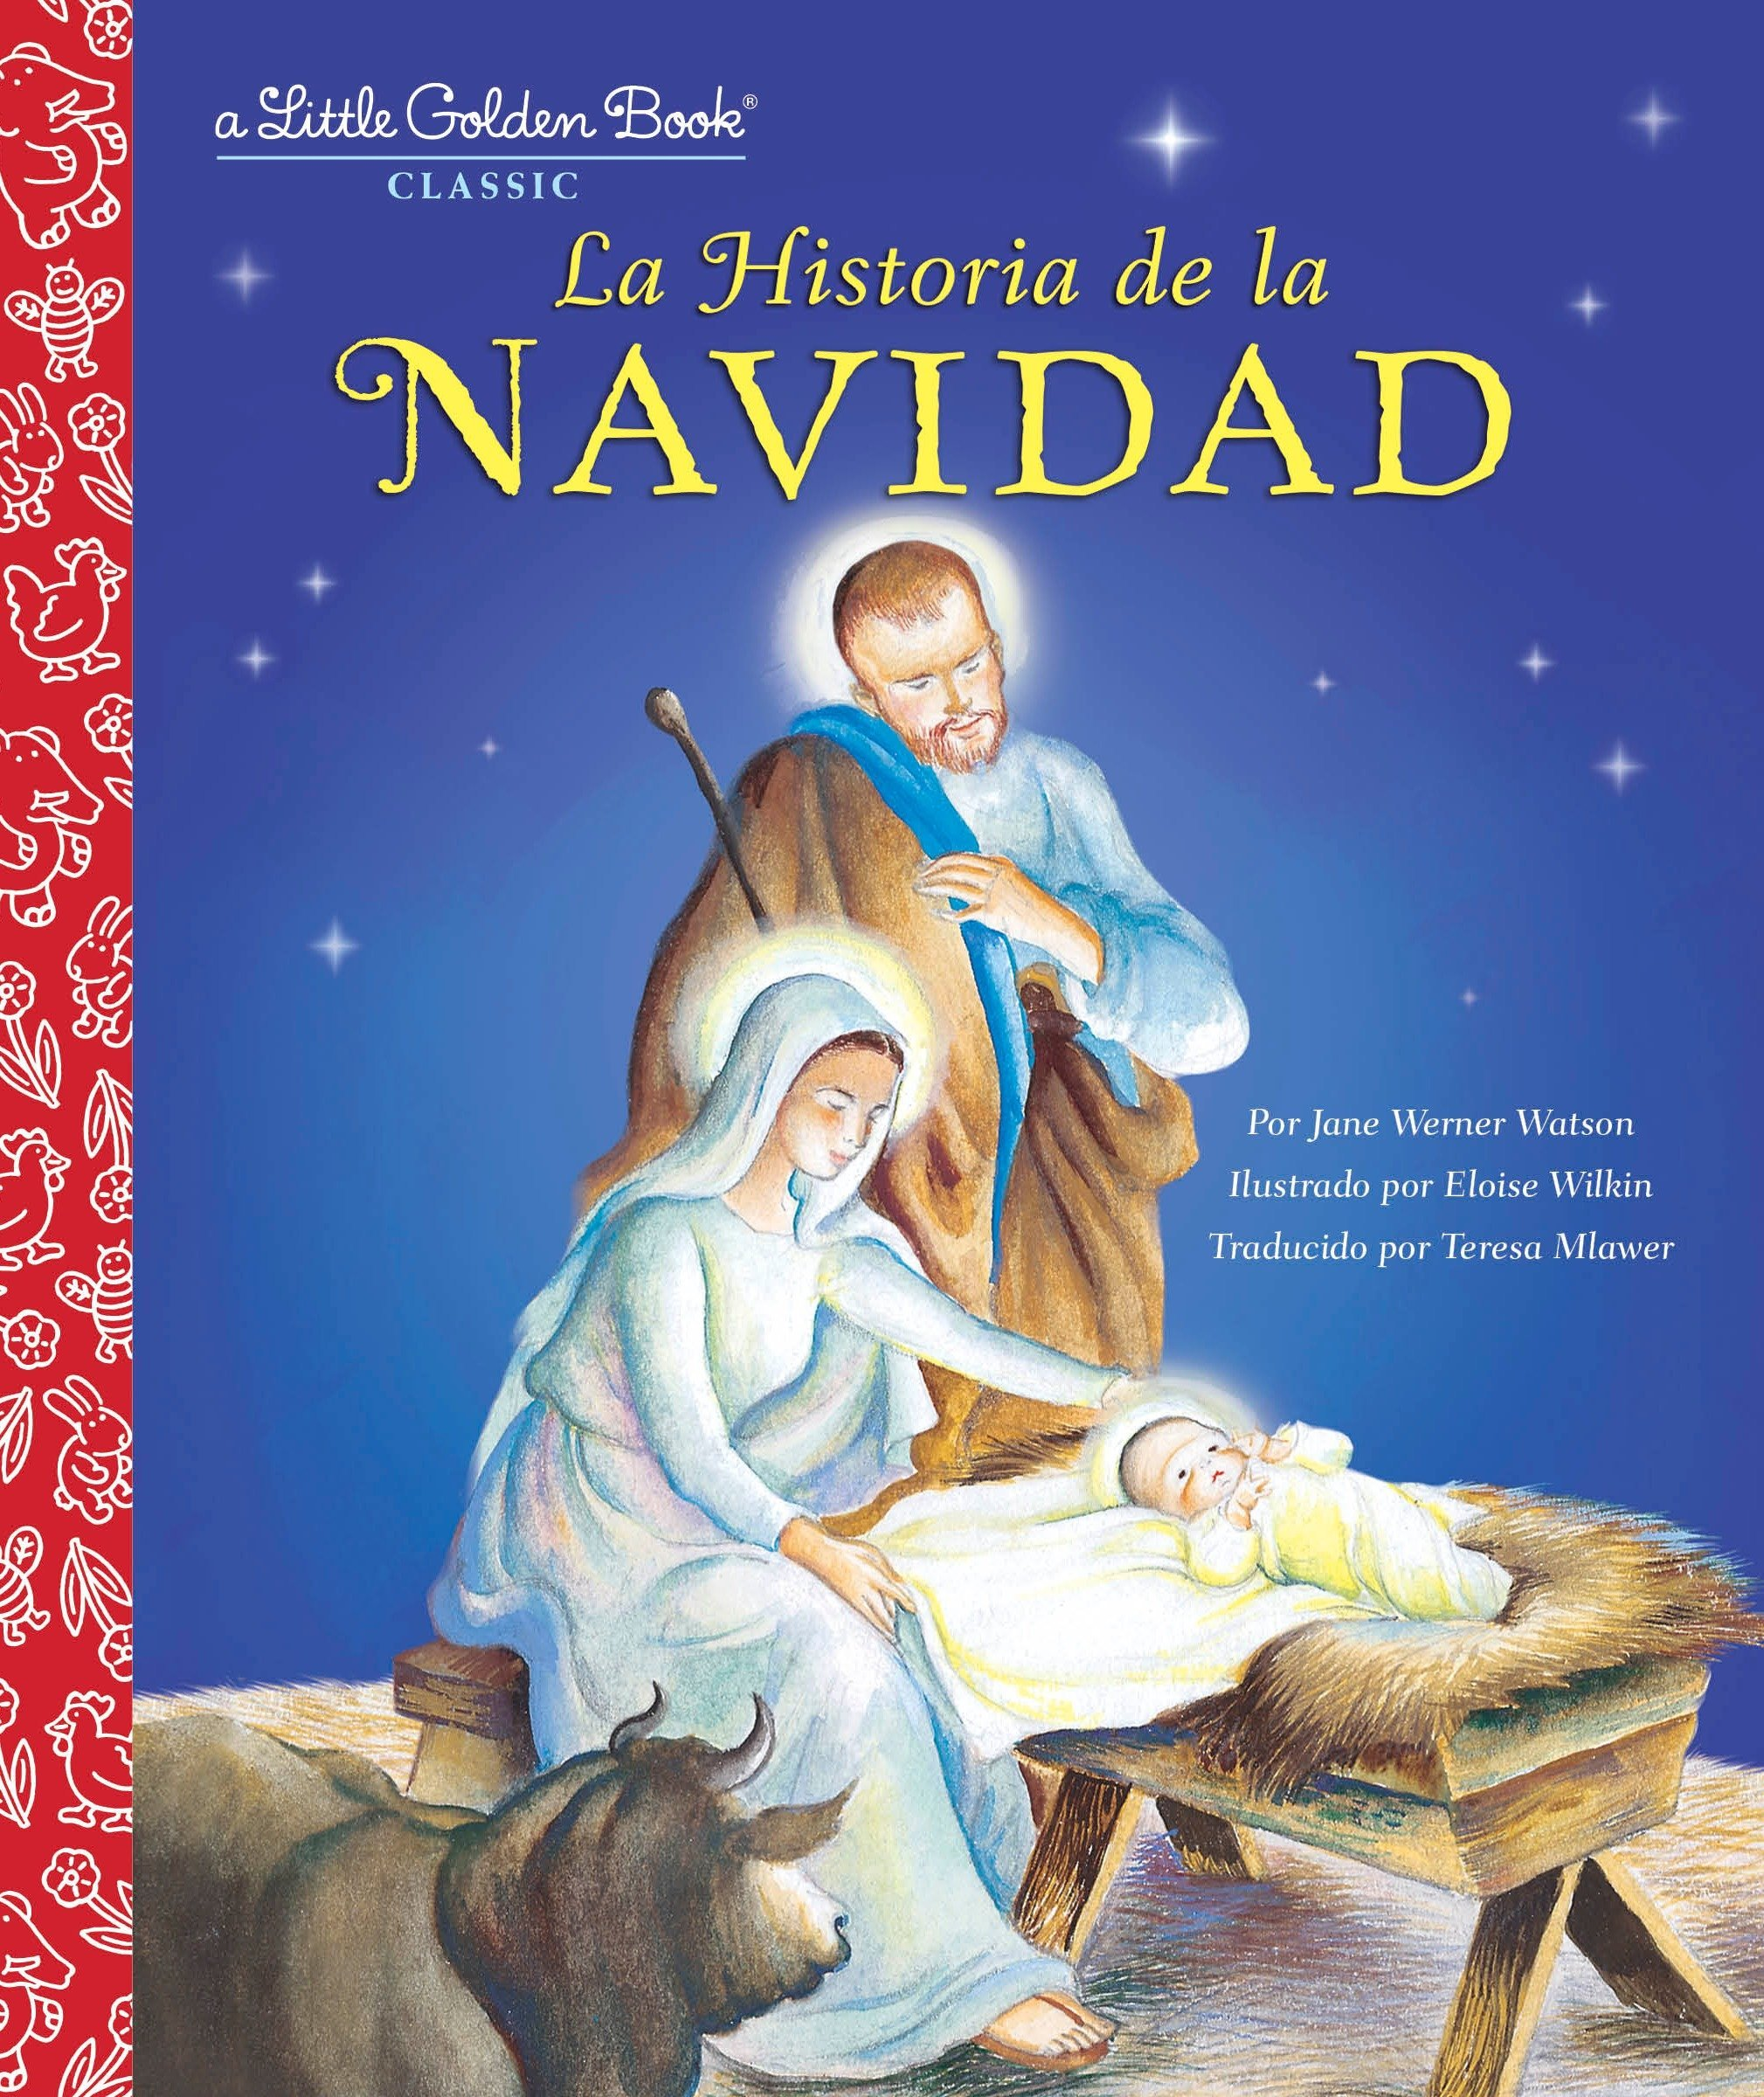 Amazon.com: La Historia de la Navidad (Little Golden Book ...